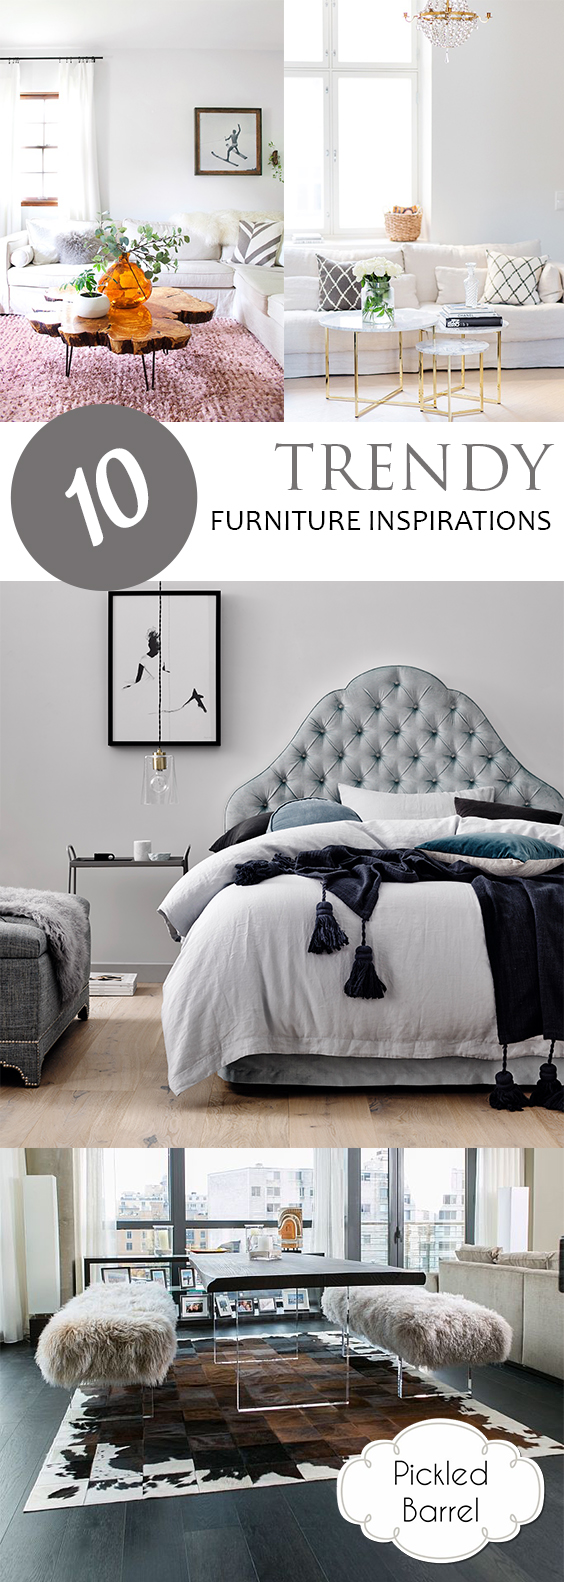 10 Trendy Furniture Inspirations| Furniture, DIY Furniture Projects, Furniture Tips and Tricks, Furniture Projects, DIY Furniture Projects, DIY Home, DIY Home Decor, Home Decor Hacks, Popular Pin